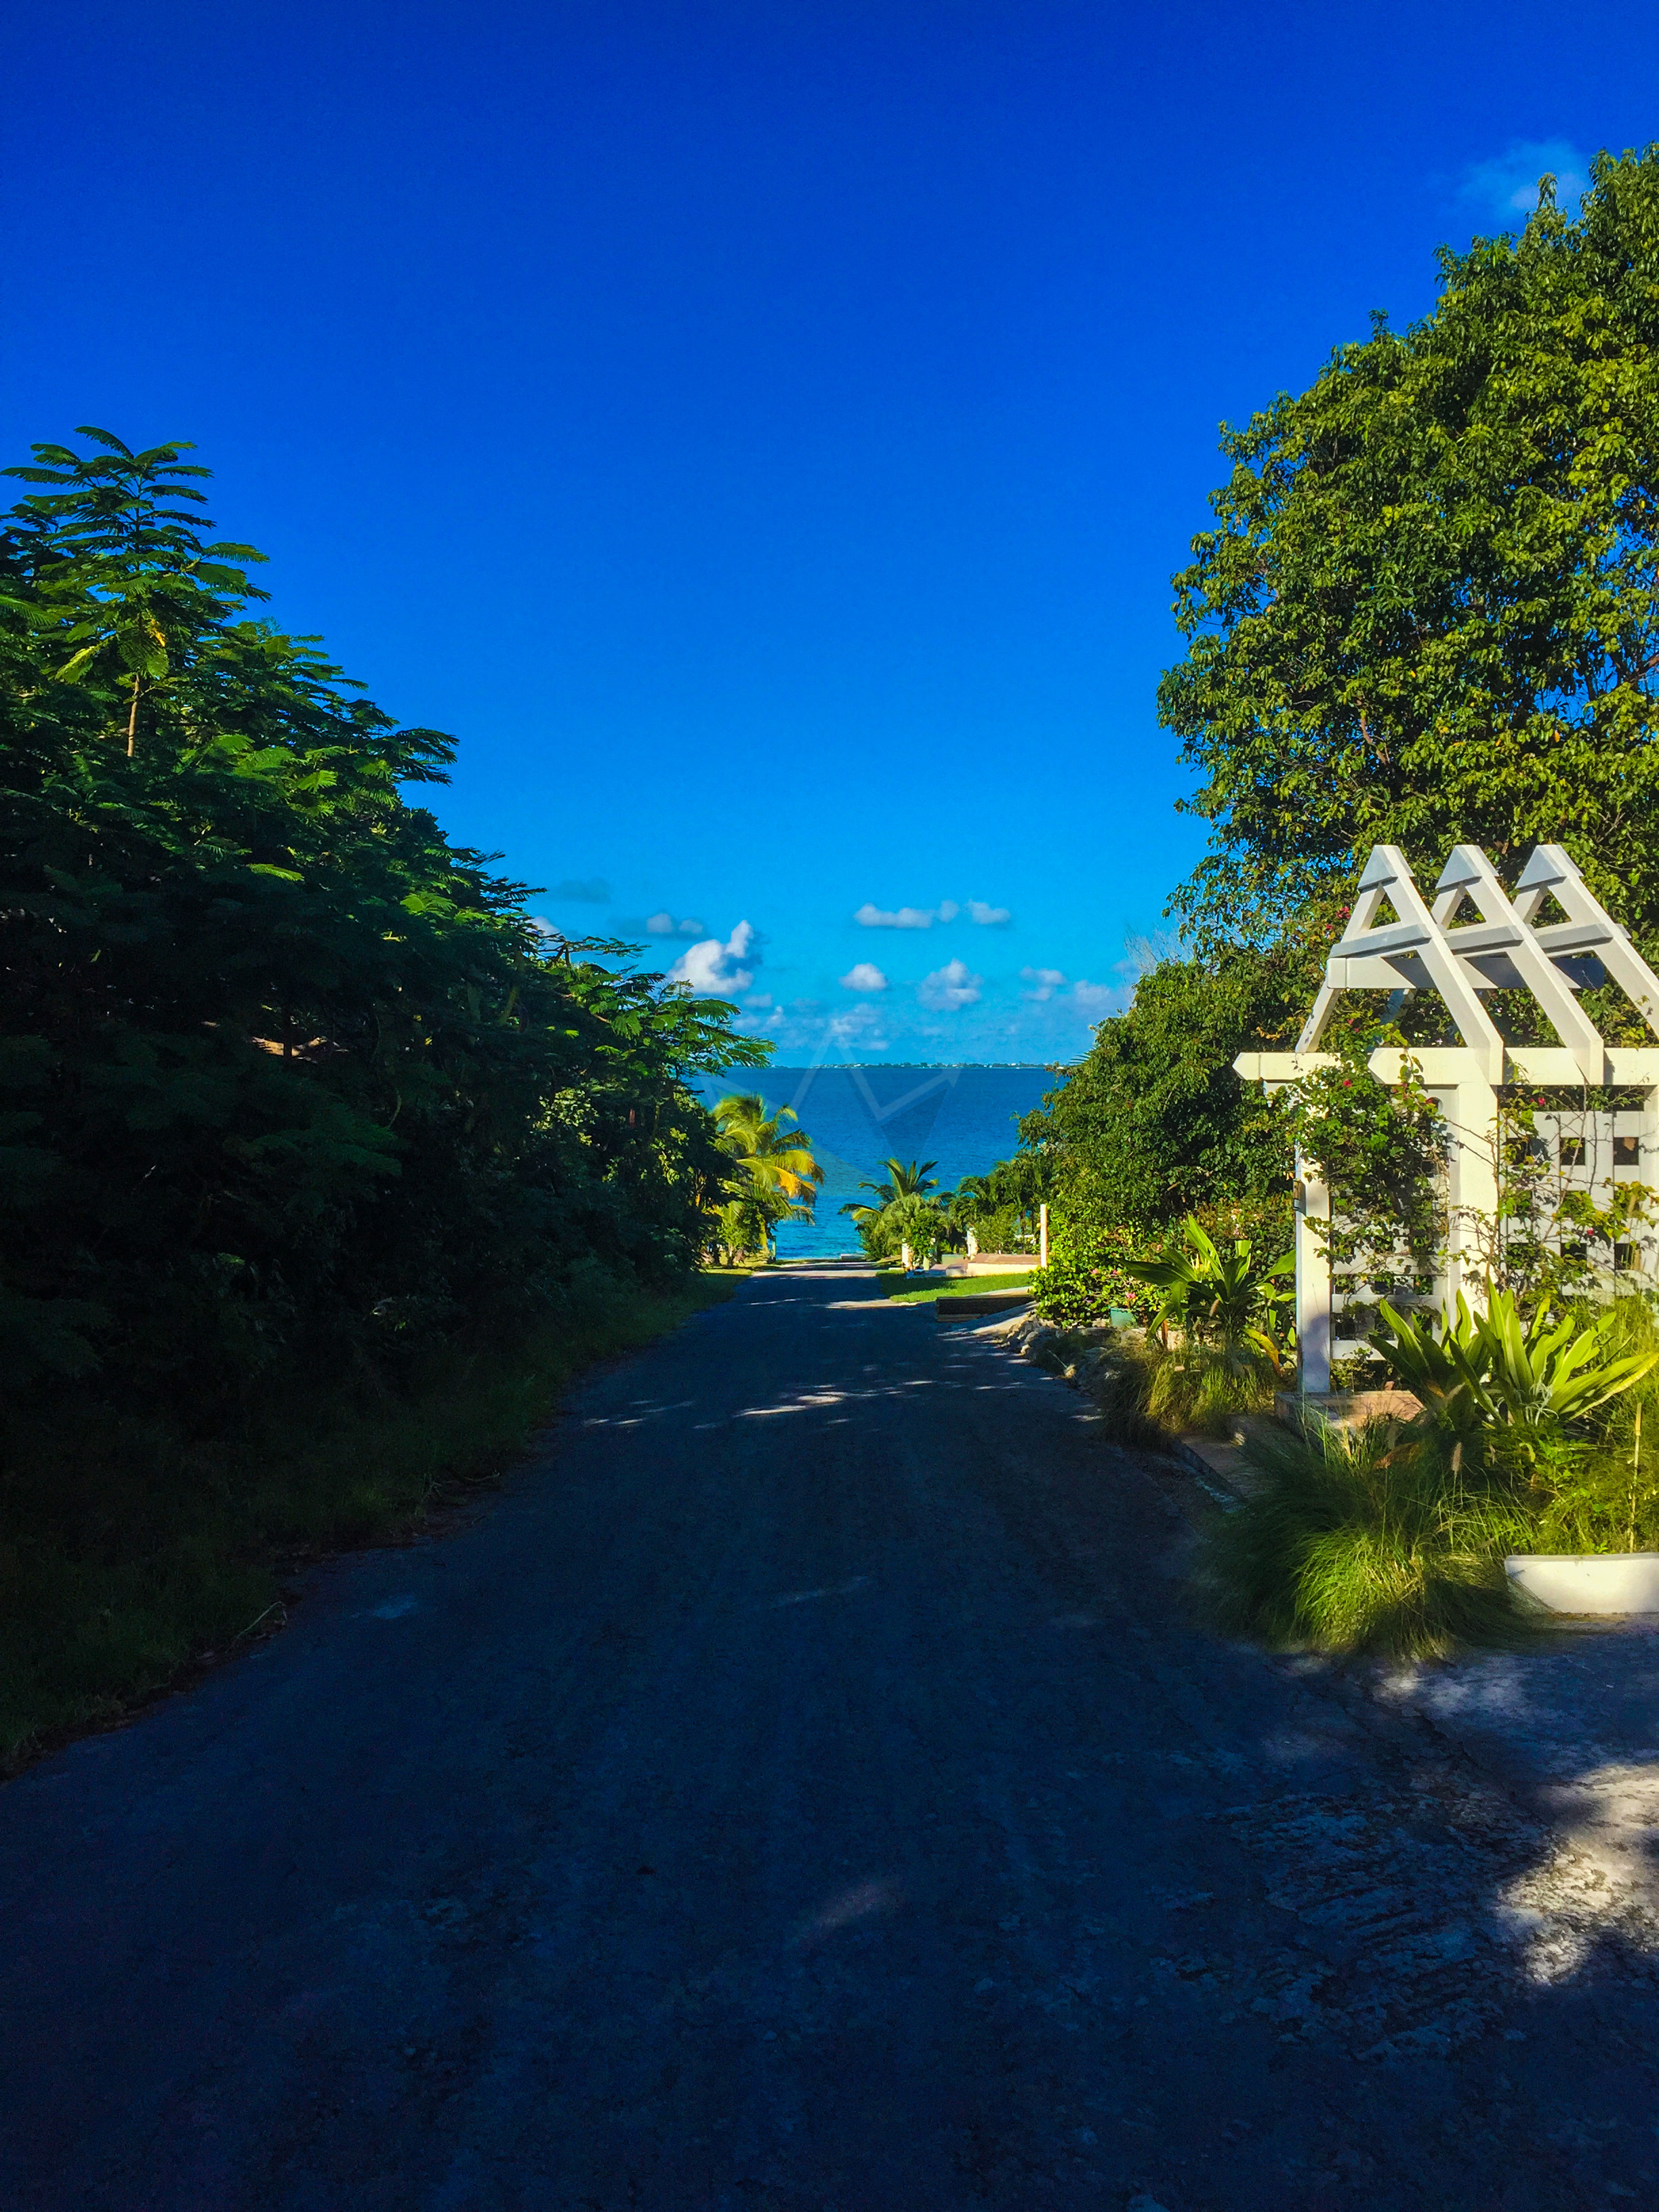 Road leading to shore in Marsh Harbour, Abaco